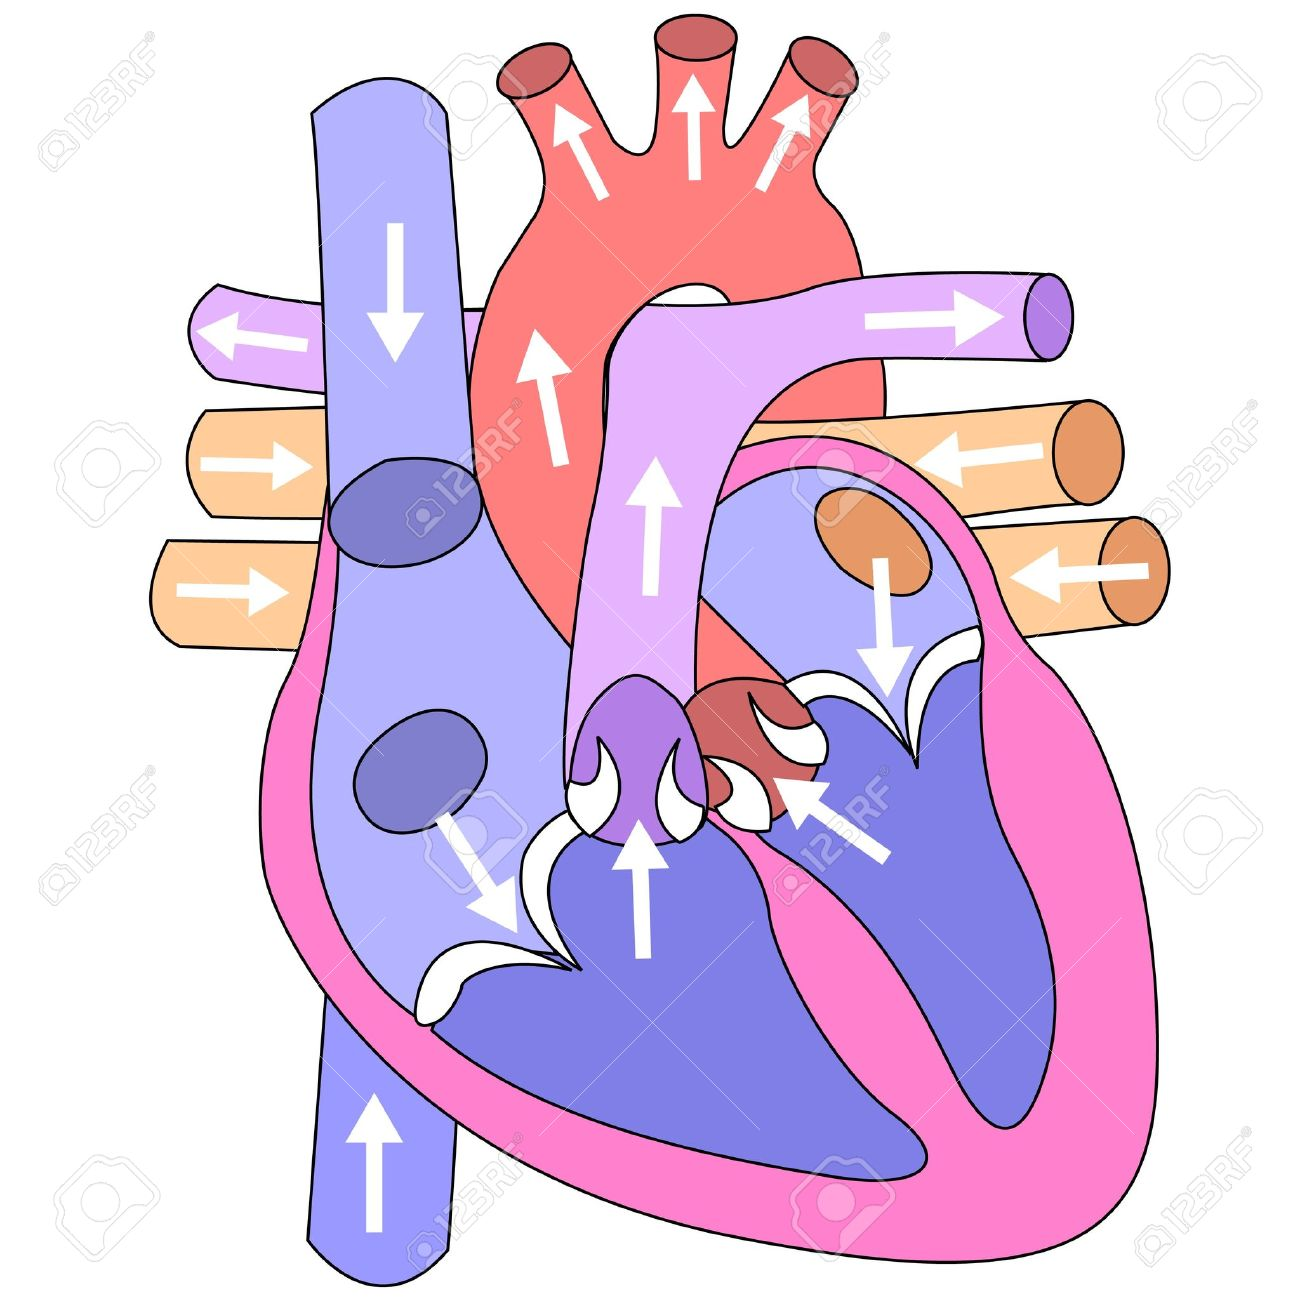 Human heart and vessels on a white background Stock Vector - 9333680